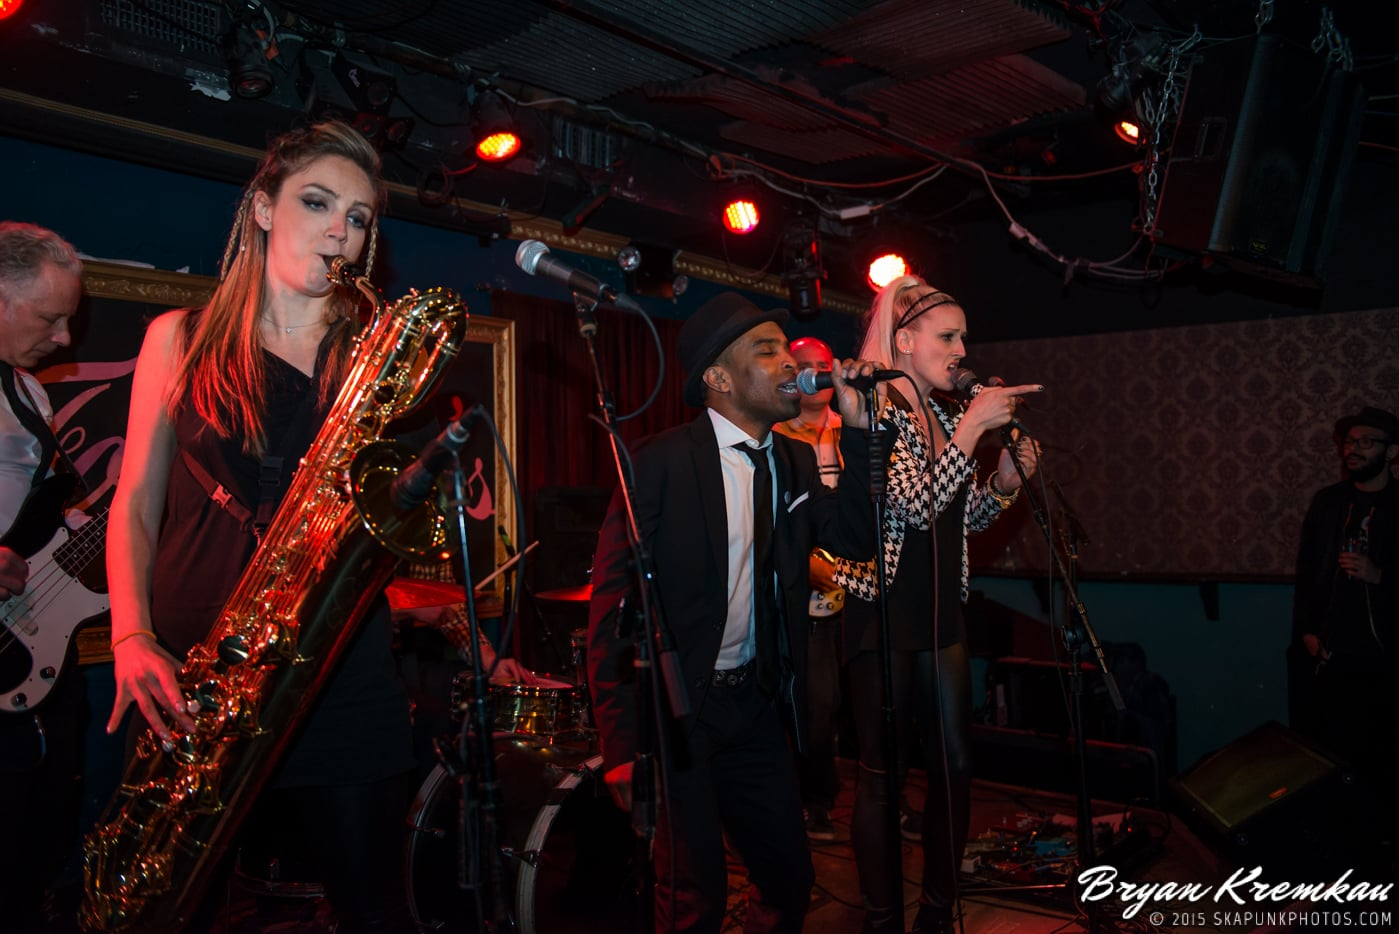 Rude Boy George @ Fontana's, NYC - 4.25.15 - Photo by Bryan Kremkau (24)